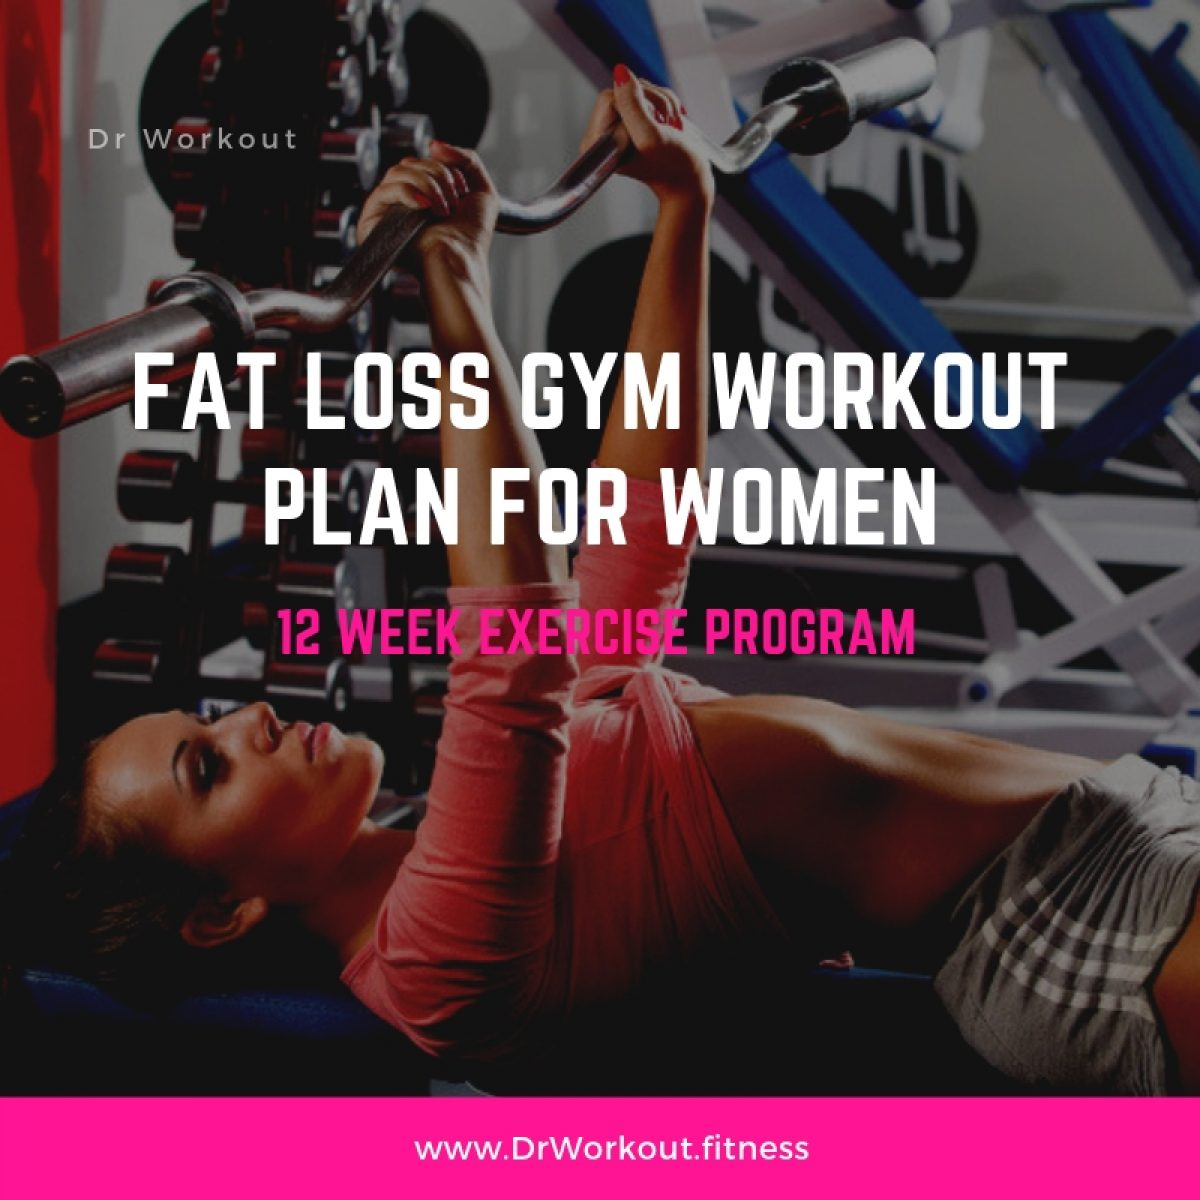 Workout plan at the gym to lose weight